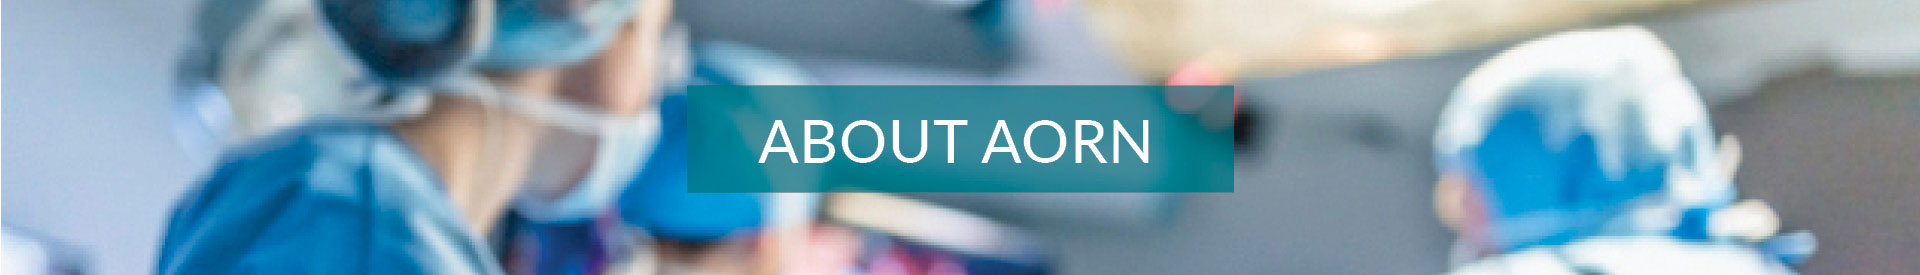 About AORN